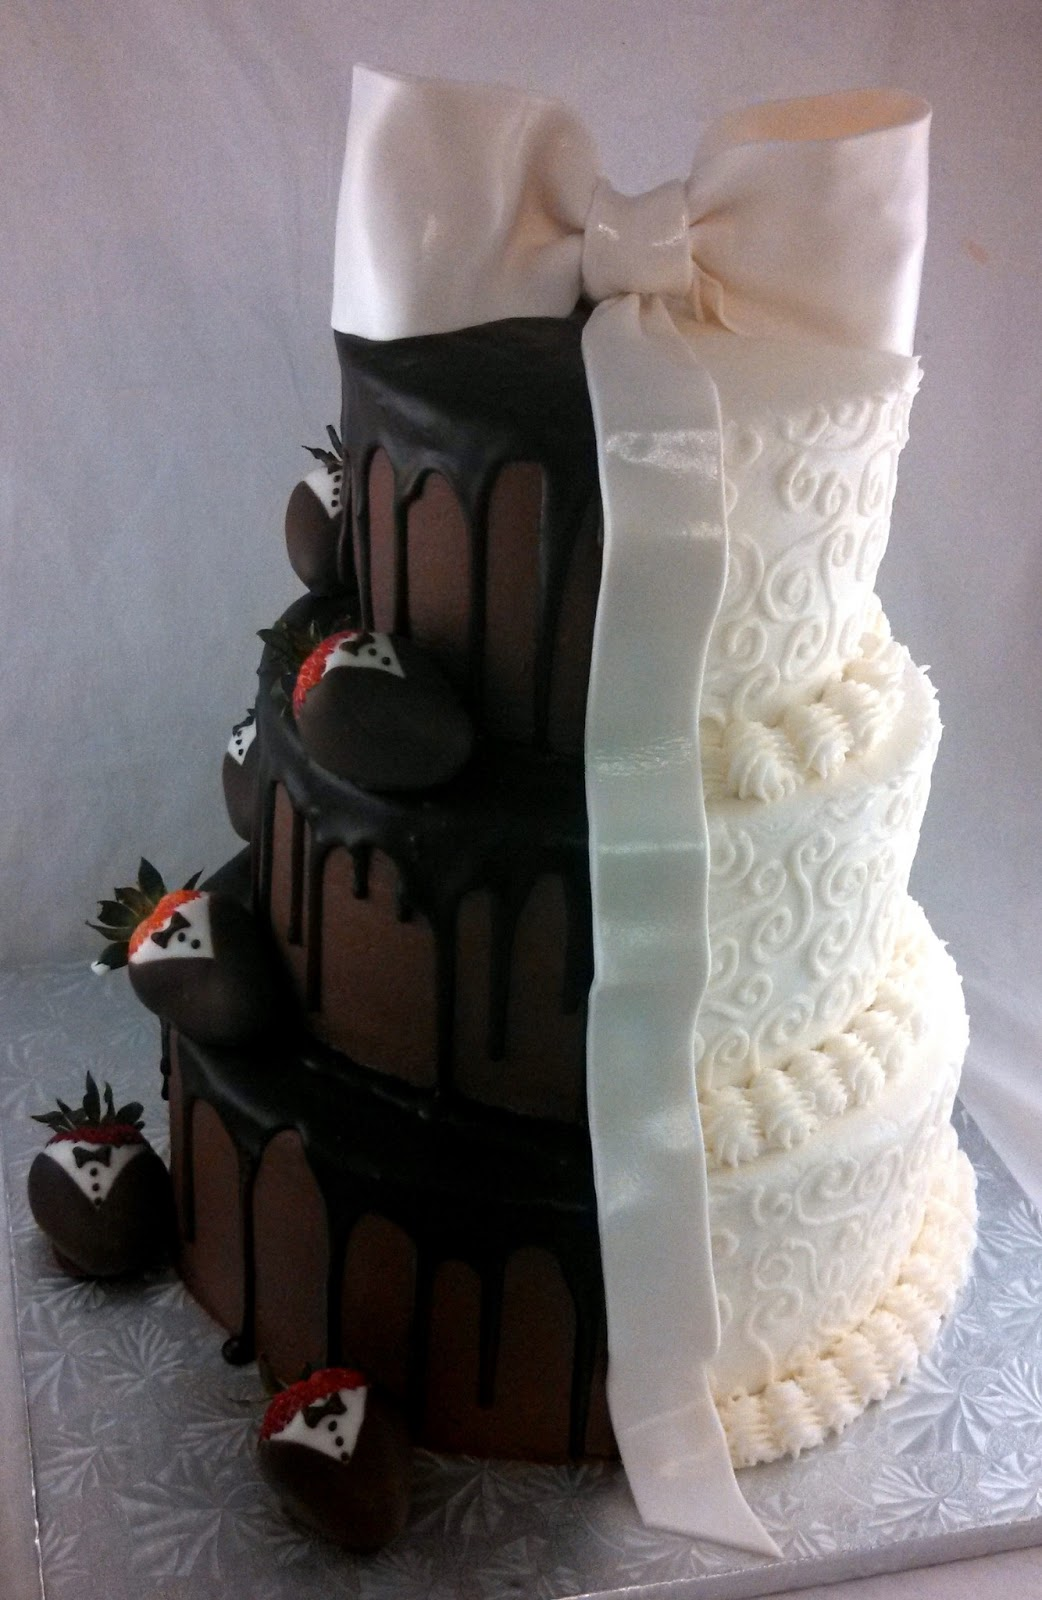 Sugar Spice Sweets Half and Half Wedding Cake